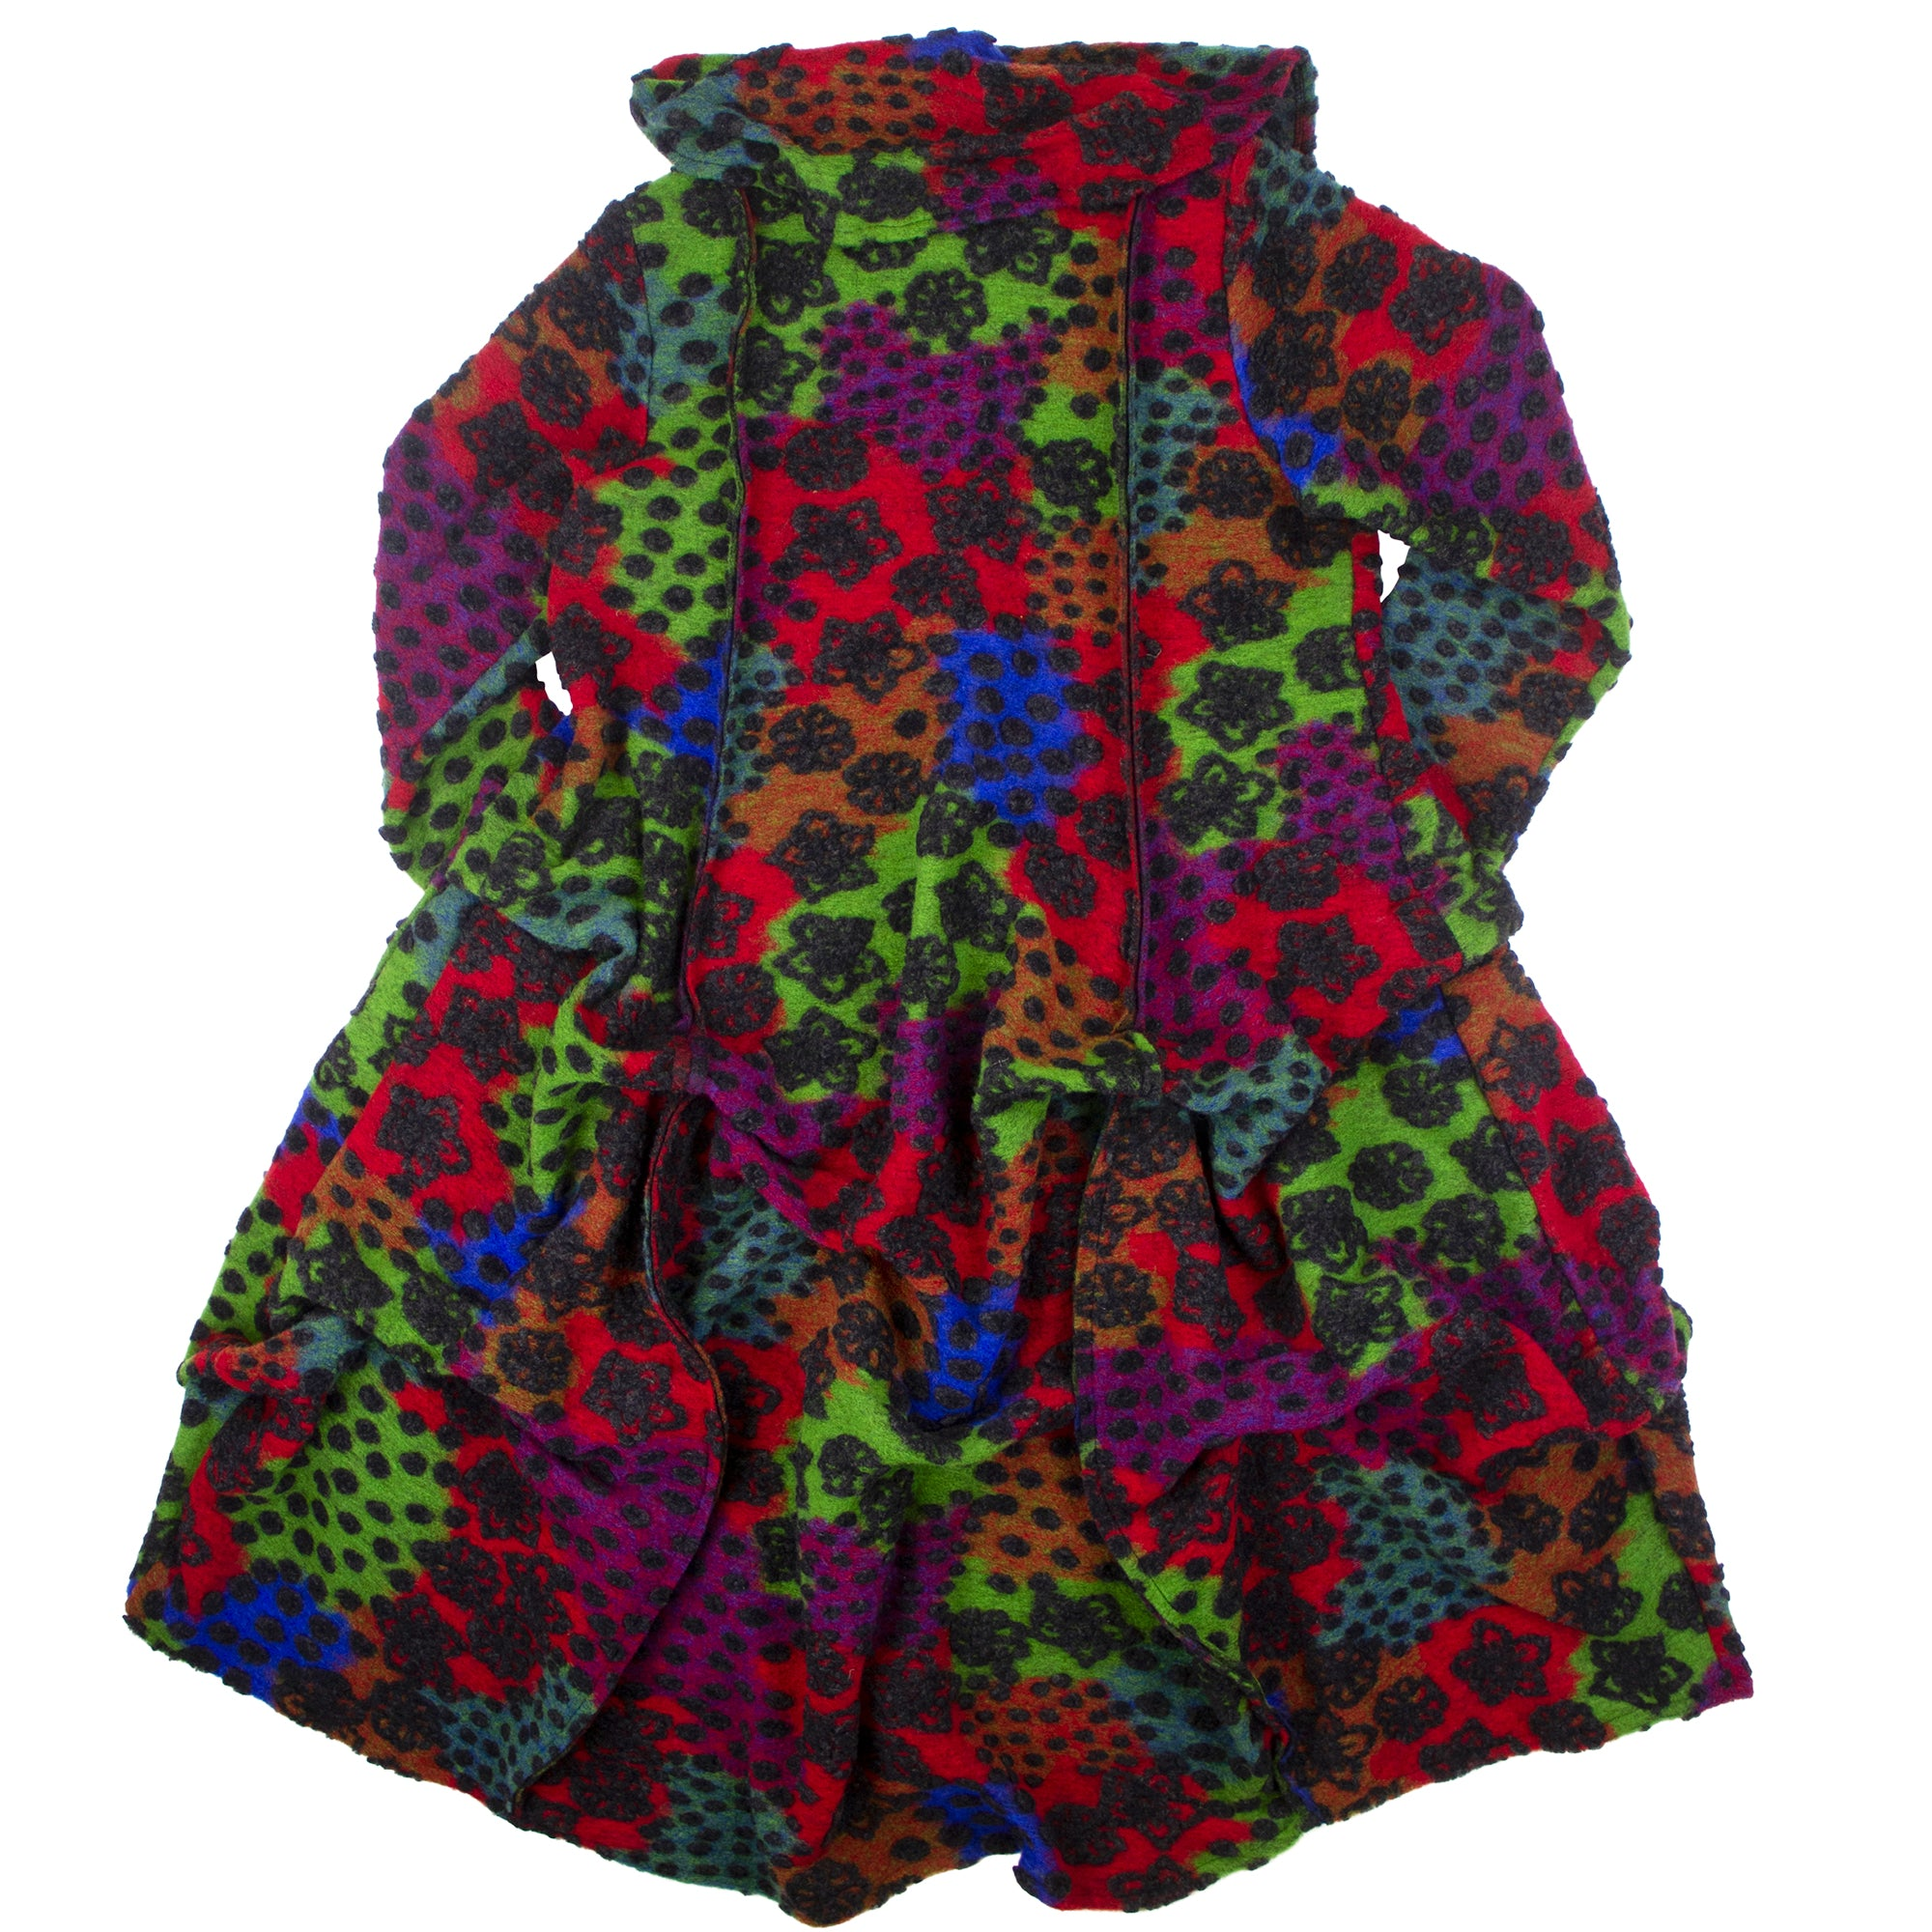 Bodil's Italian wool-blend coat is balanced and abstract with rich and bright tones and texture.